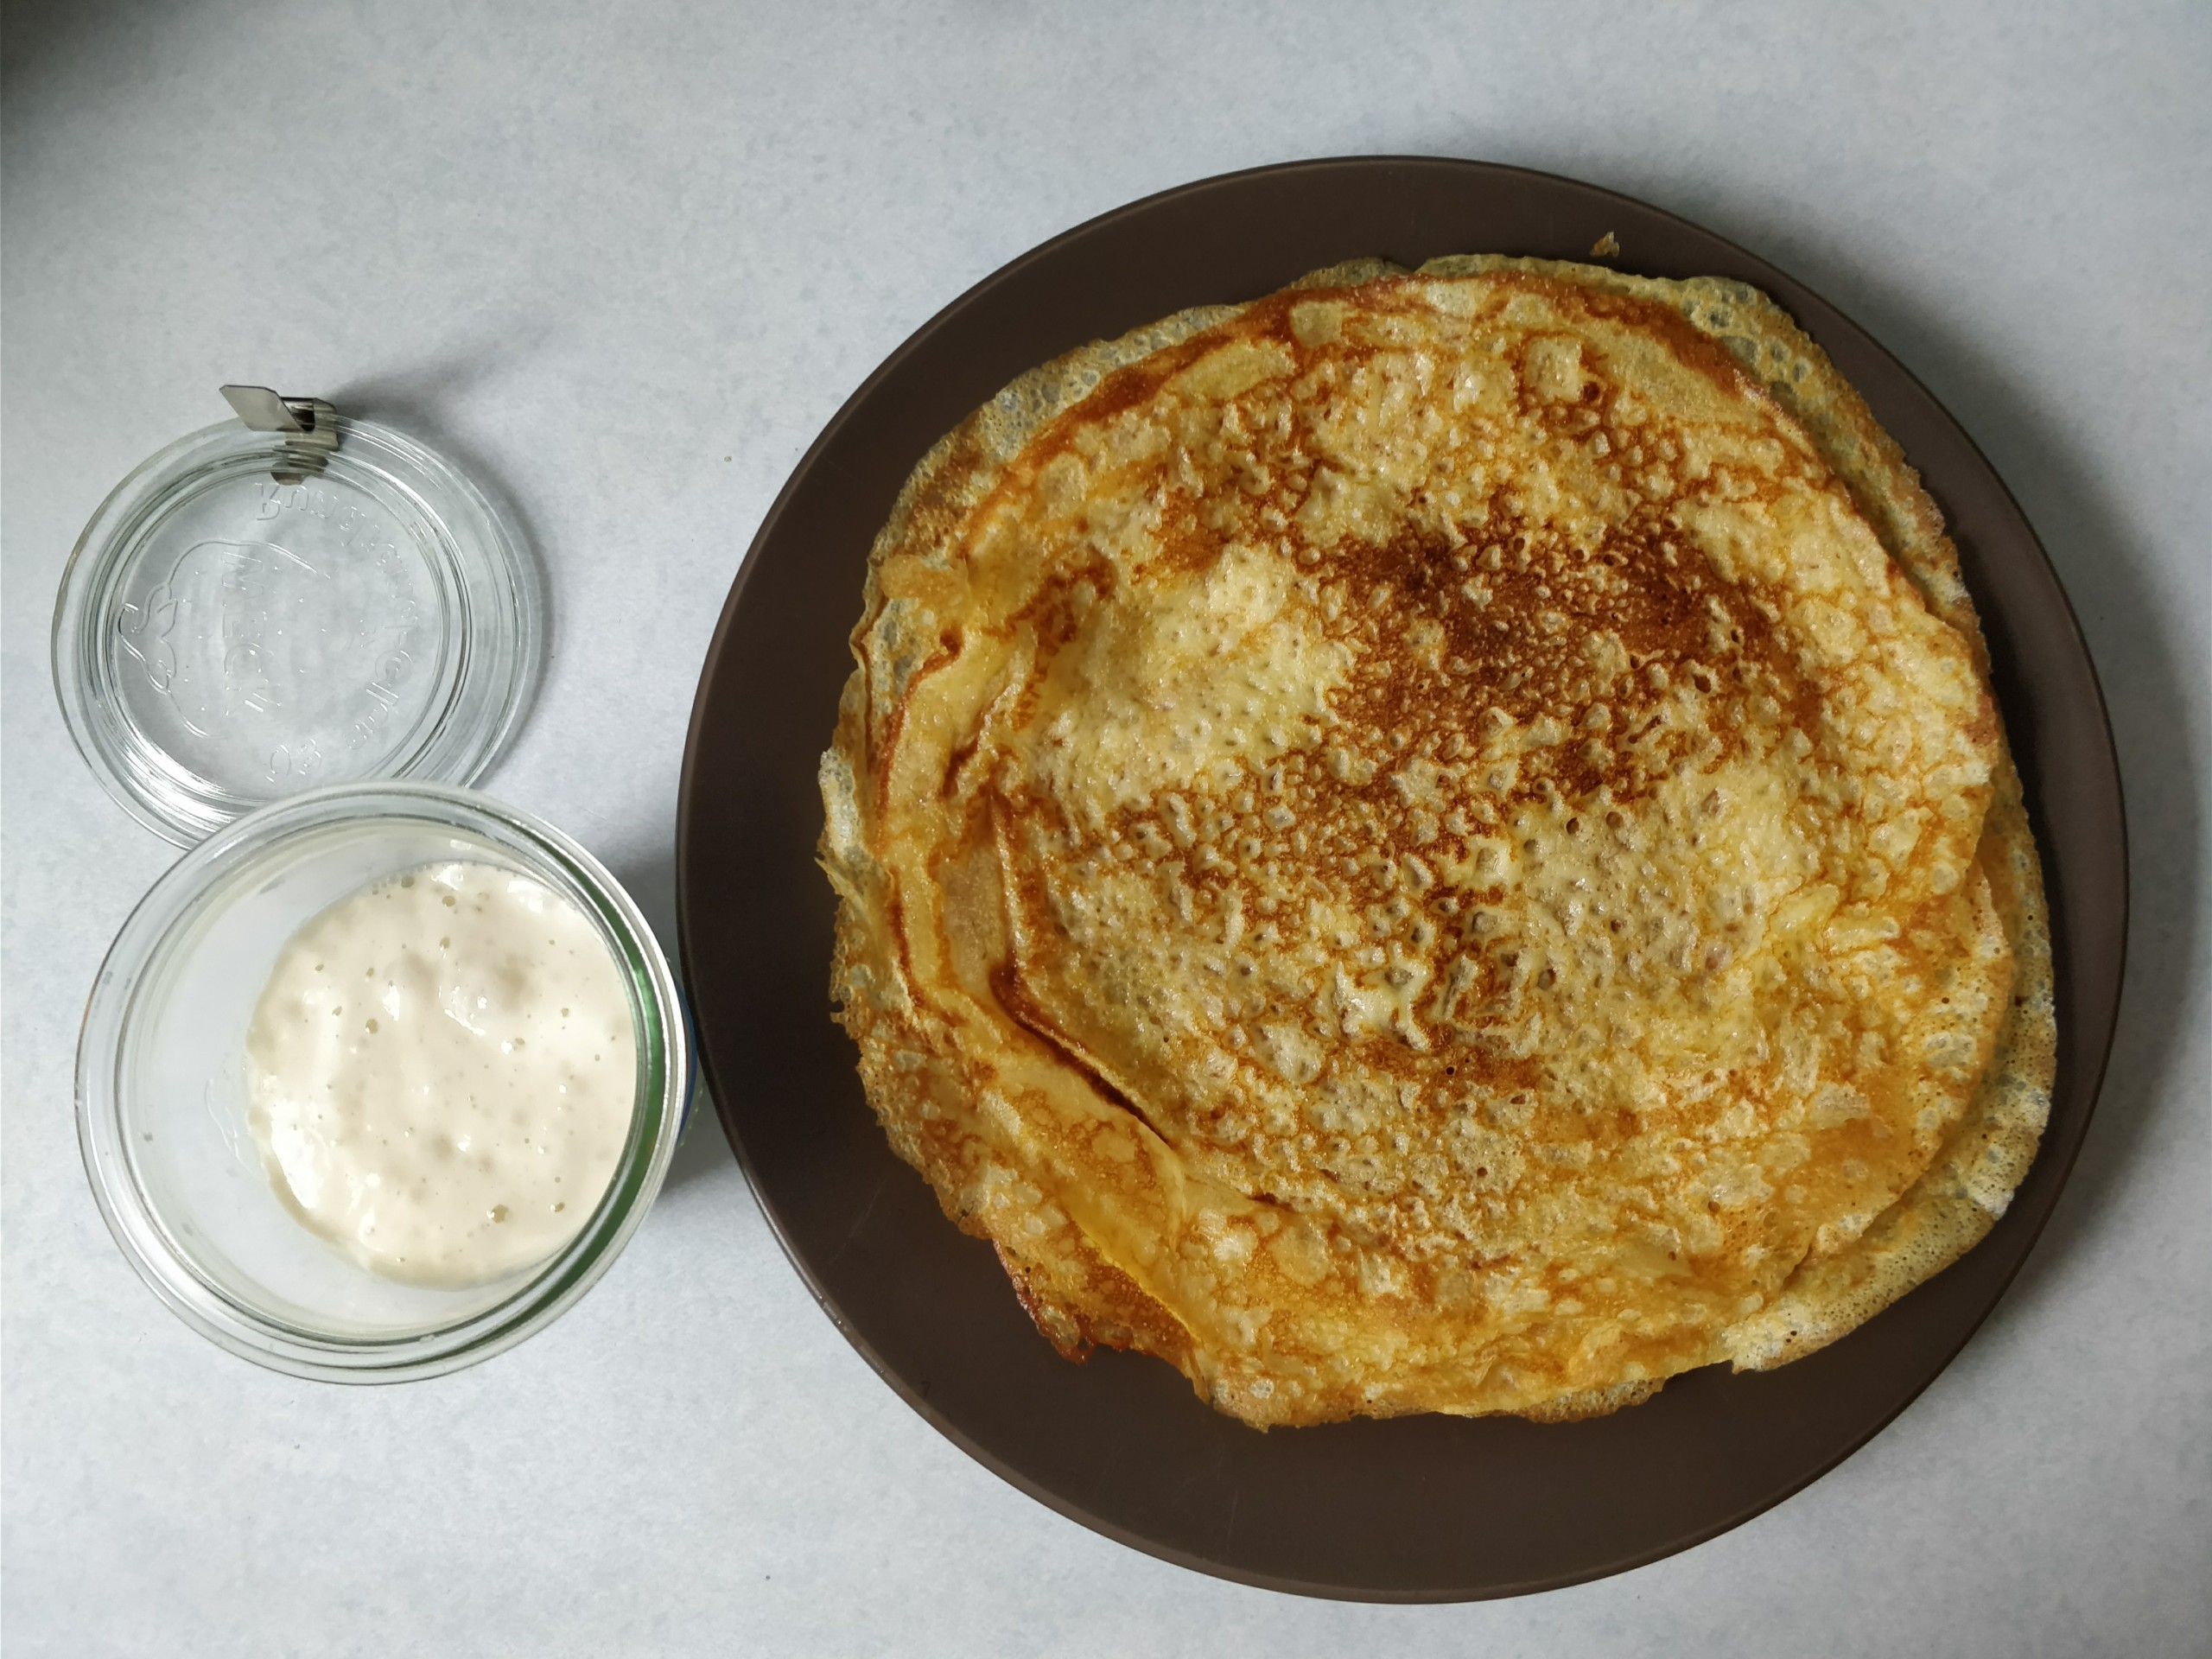 plate of sourdough crepes next to an open weck jar containing sourdough starter